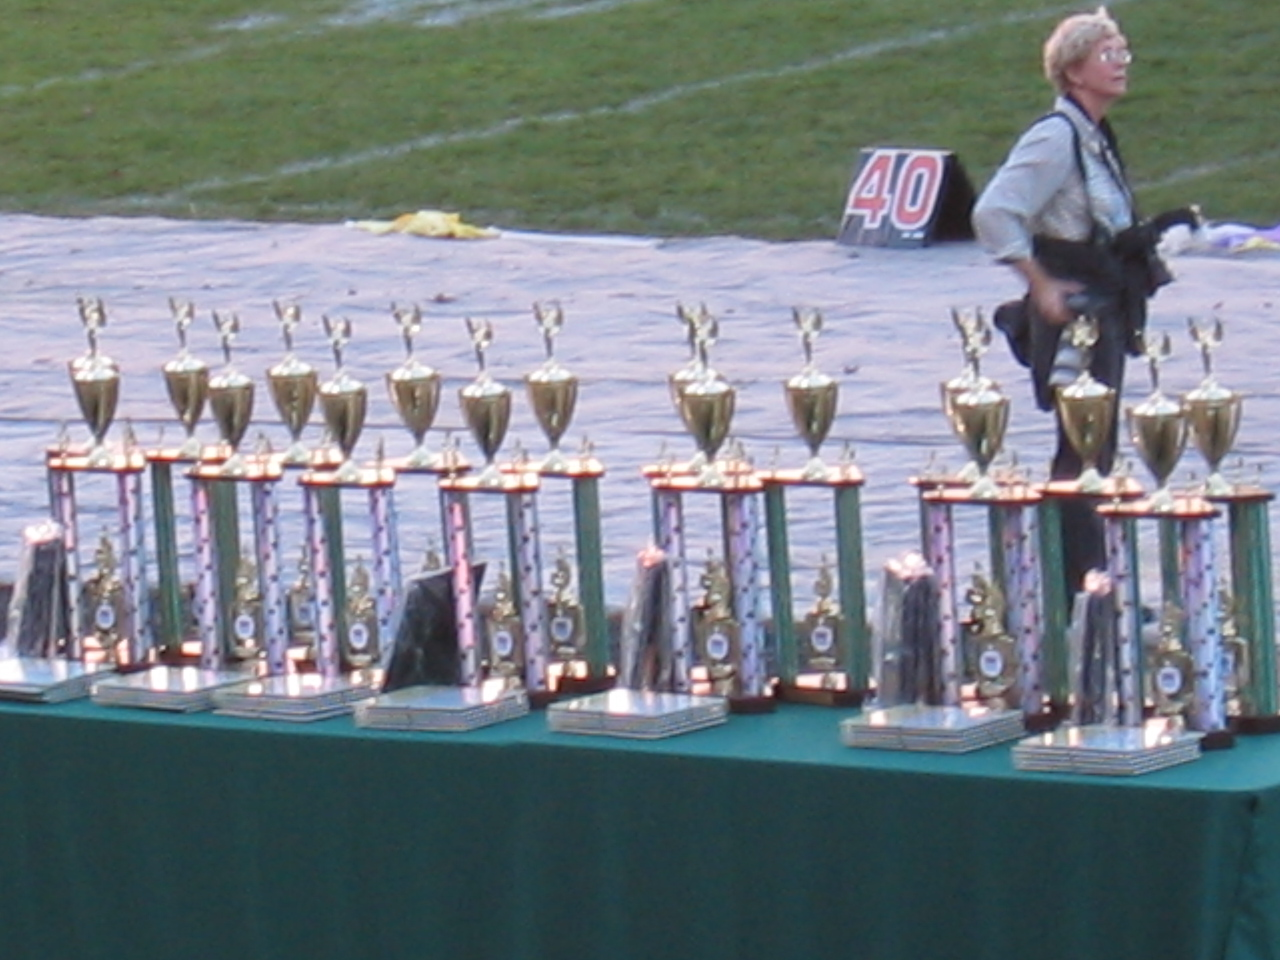 2003 11 01 Saturday - The trophies